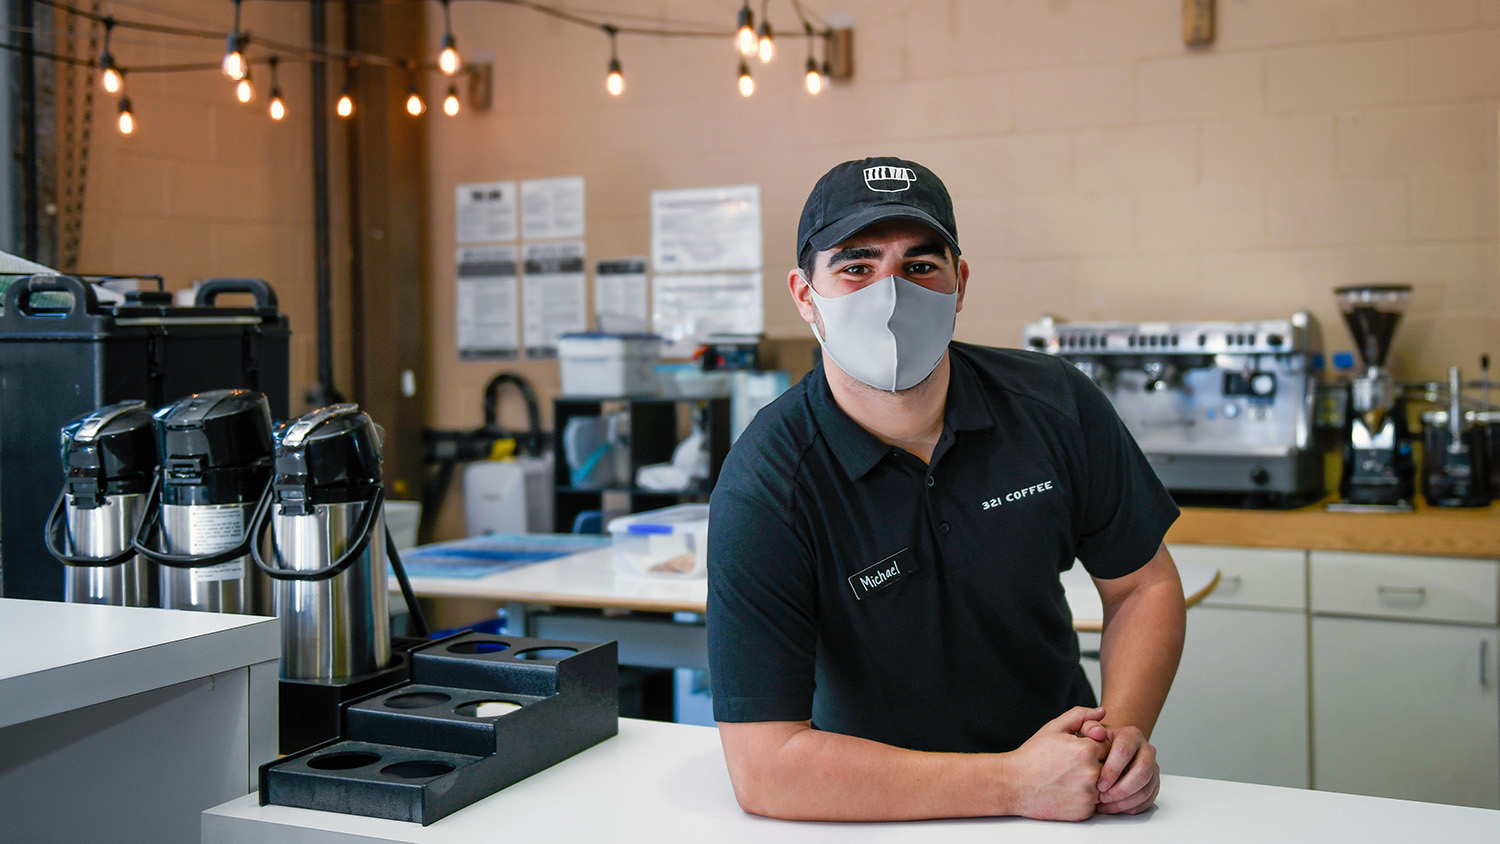 Michael Evans stands behind the counter of 321 Coffee for a portrait.